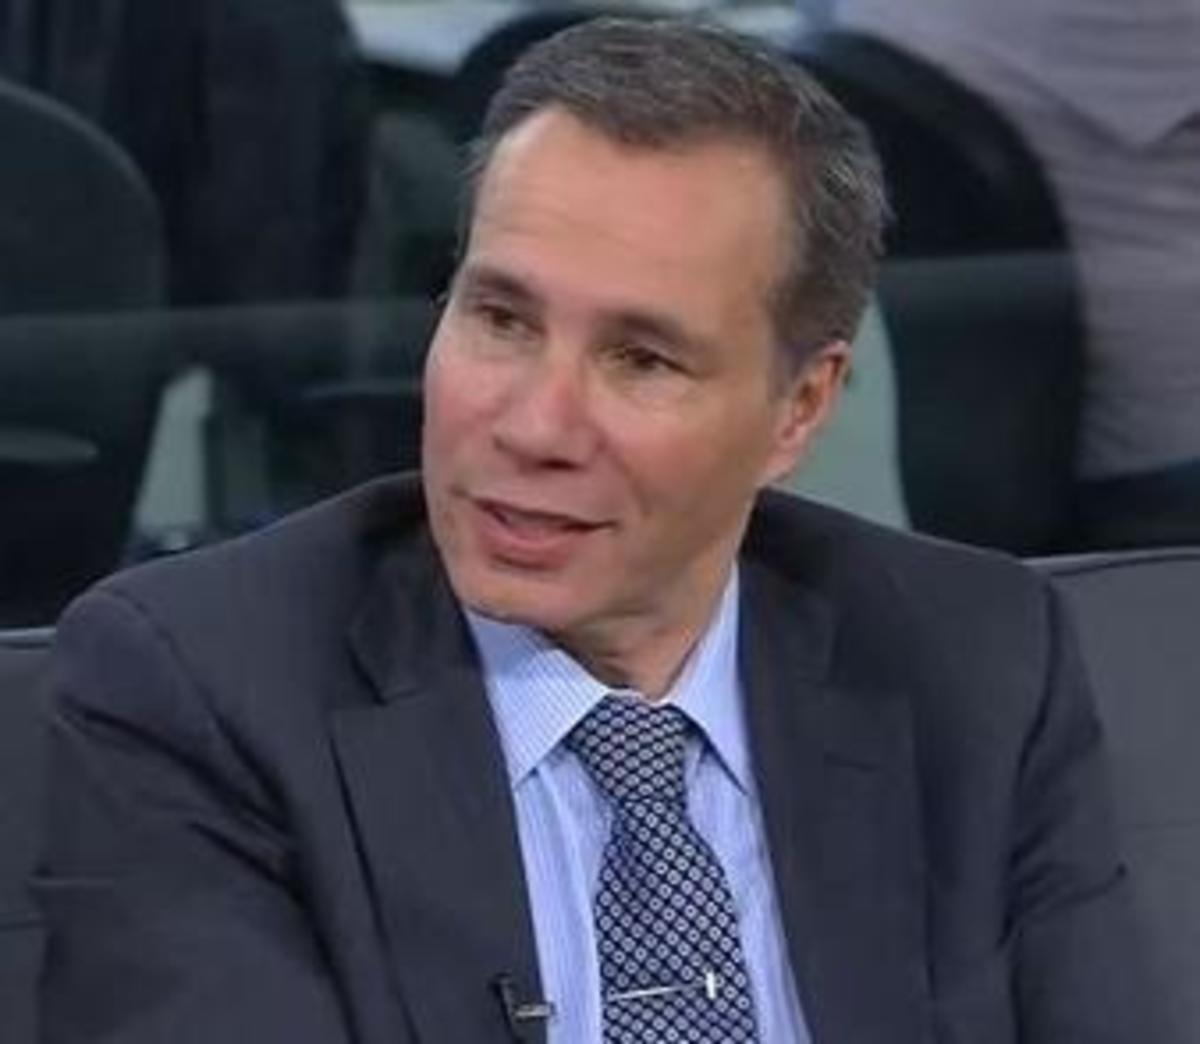 Alberto Nisman as seen on Infobae, a news website. (Photo: Wikimedia Commons)